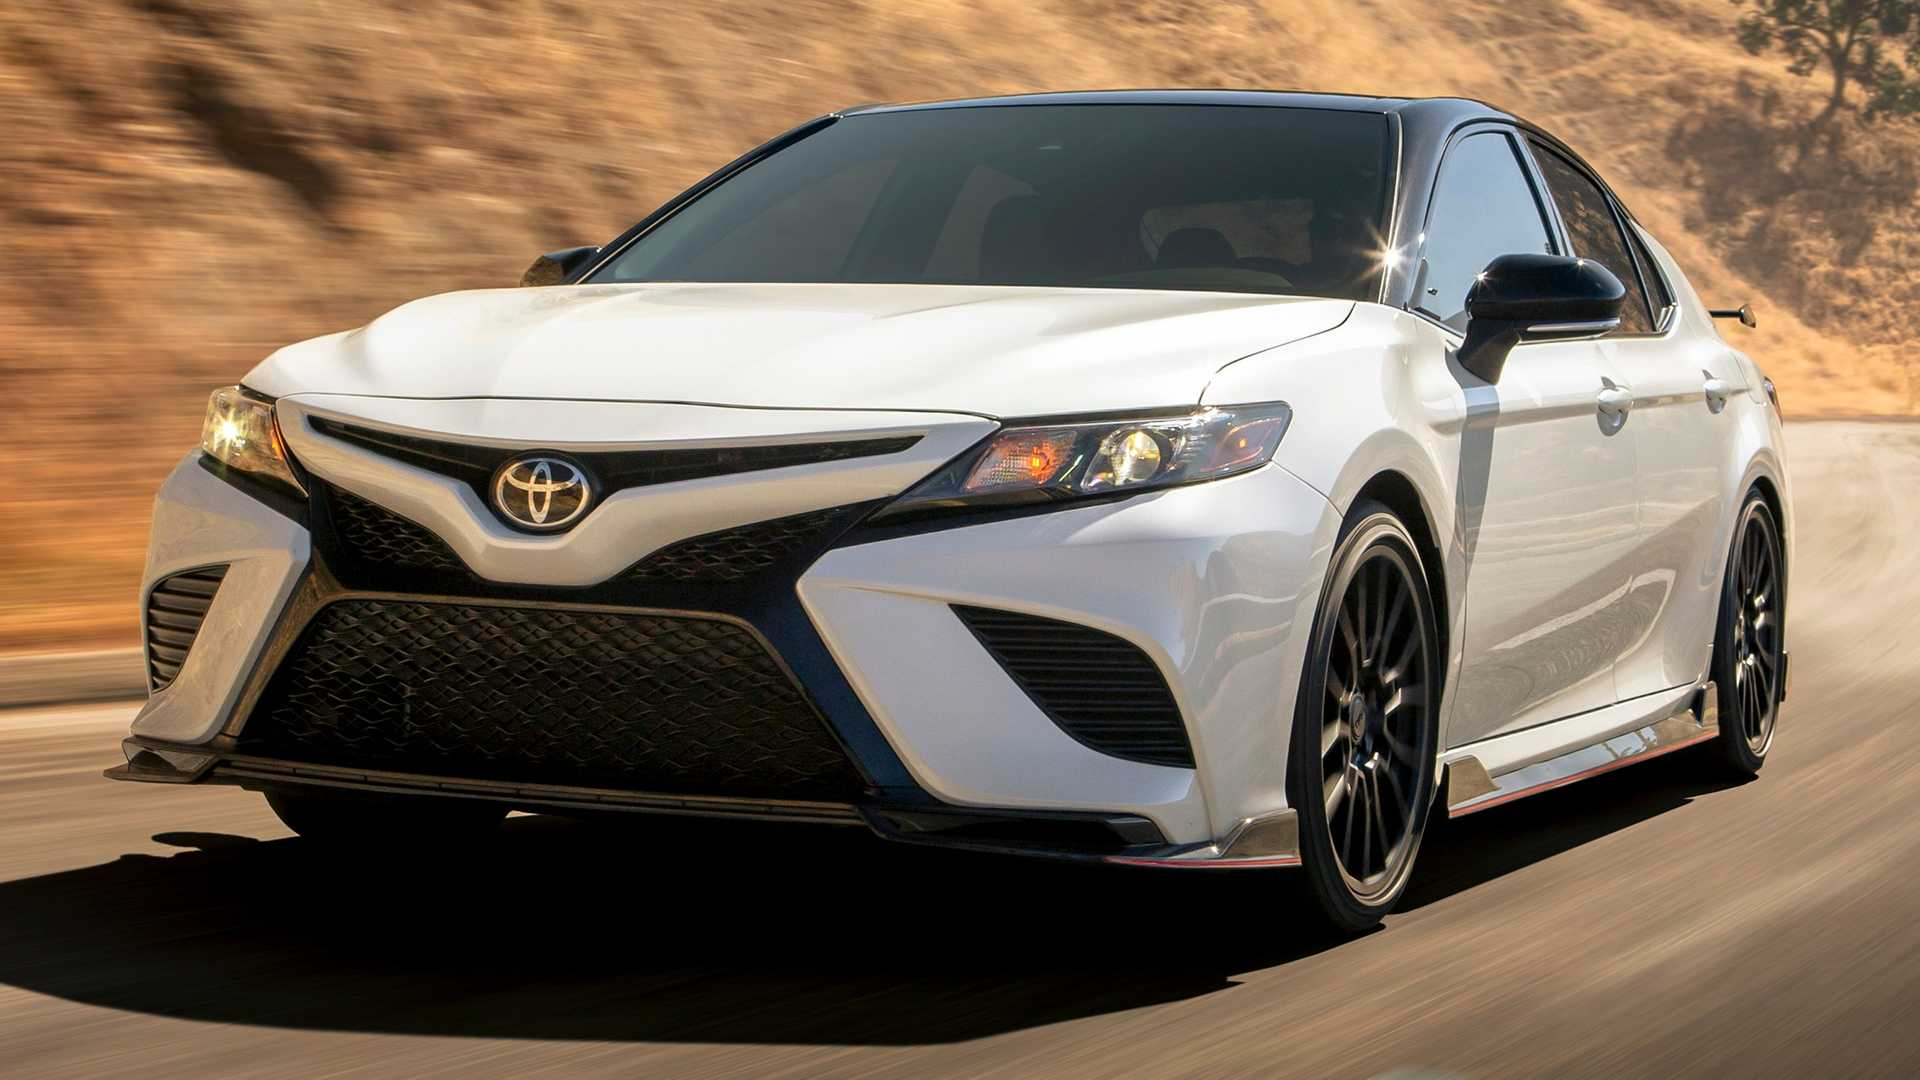 2020 Toyota Camry Interior, Price & Release Date >> 2020 Toyota Camry Trd Costs 31 995 It S The Cheapest Camry V6